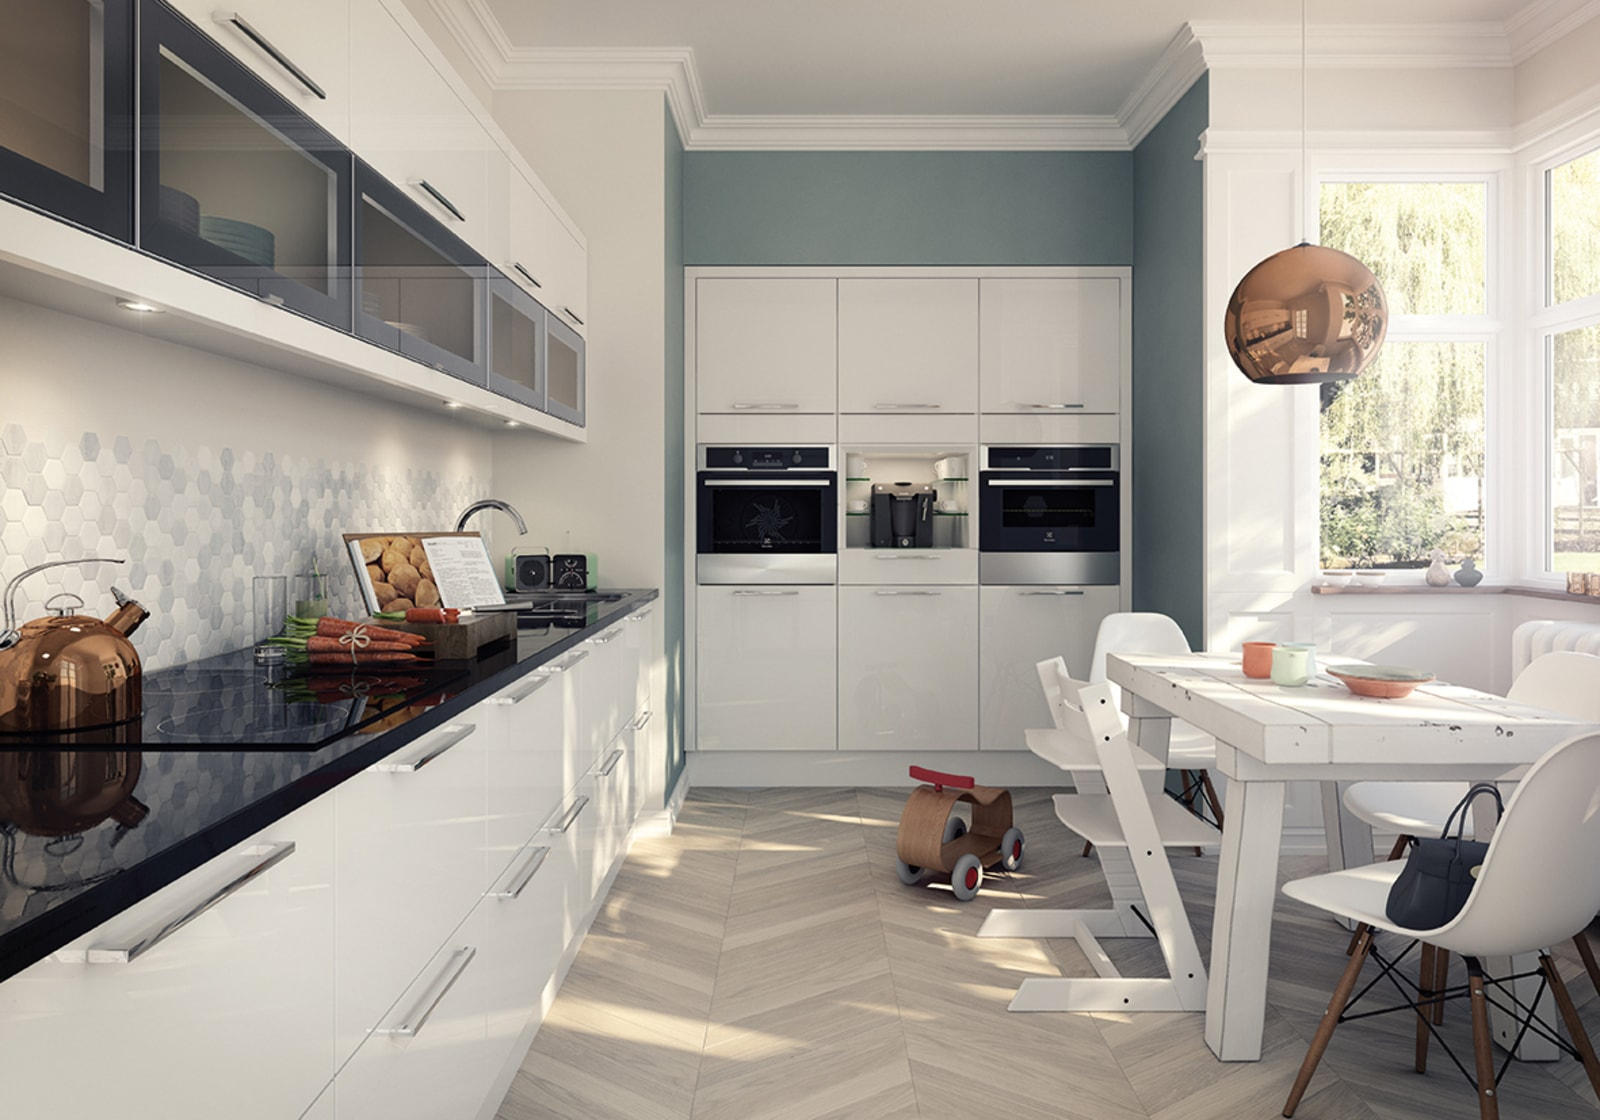 Studio by Magnet. Easy to clean durable high gloss finish kitchen with no seams or grooves. Comes in white.